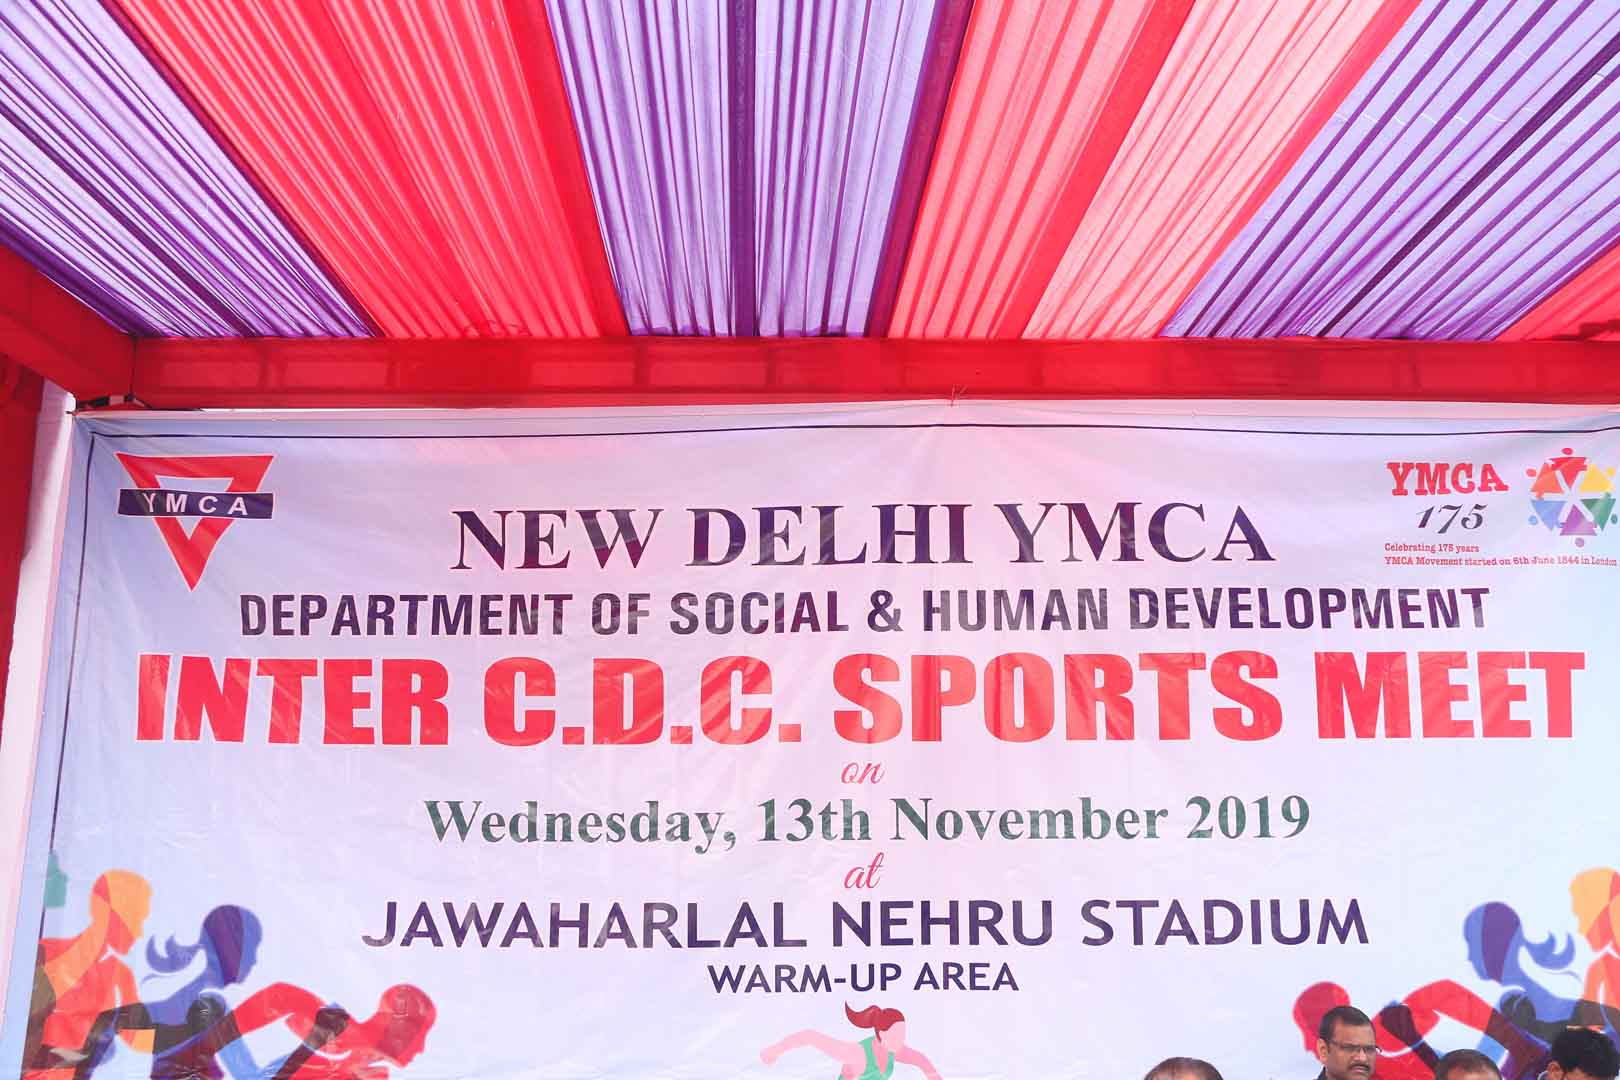 Inter CDC Sports Meet SHD 13 Nov 2019